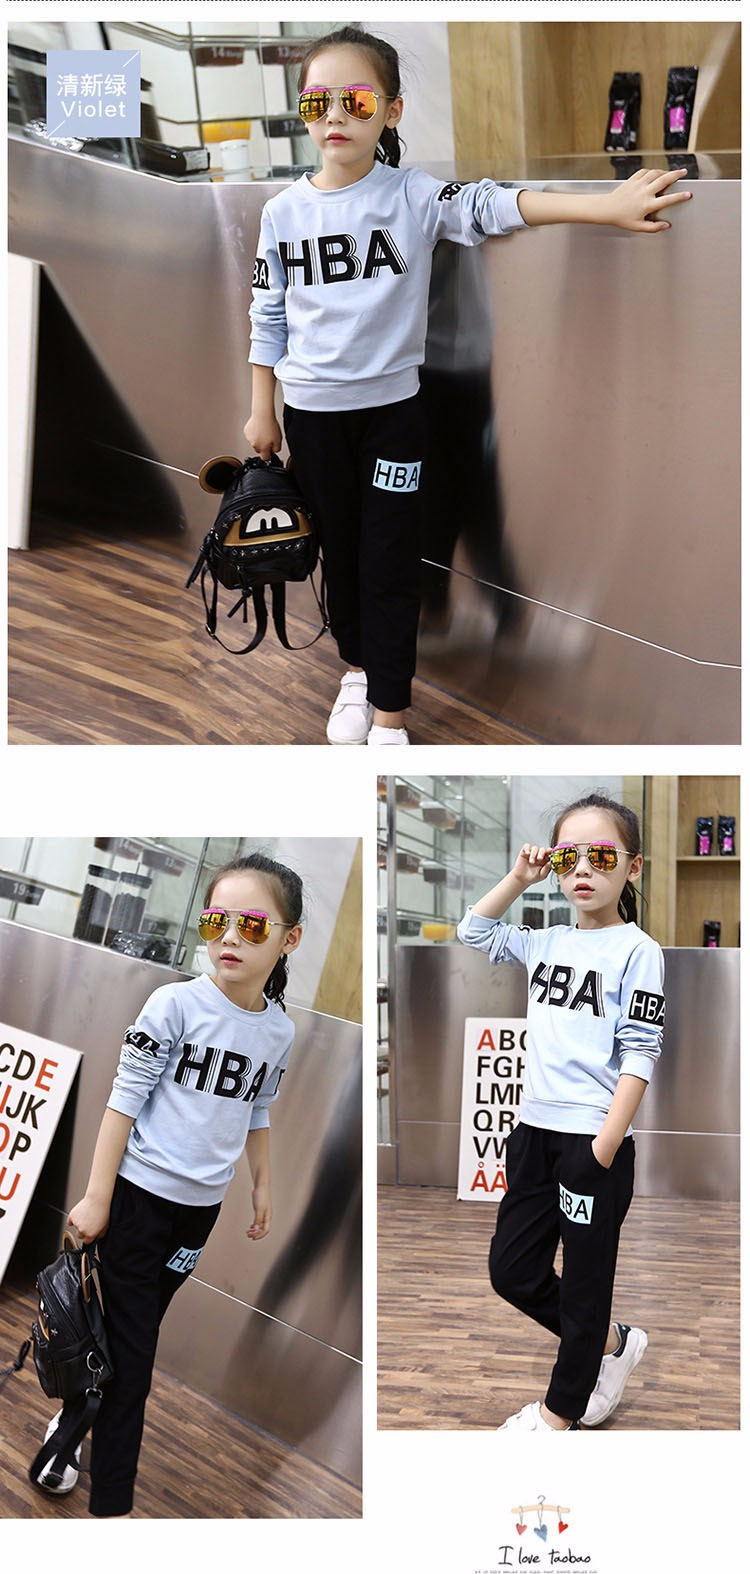 little teenage girls clothes sports suits girls outfits tracksuit autumn spring letters tops t shirts black pants tracksuits girls sets 5 6 7 8 9 10 11 12 13 14 15 16 years old little big teenage girl children sport sets clothing set for gir (4)